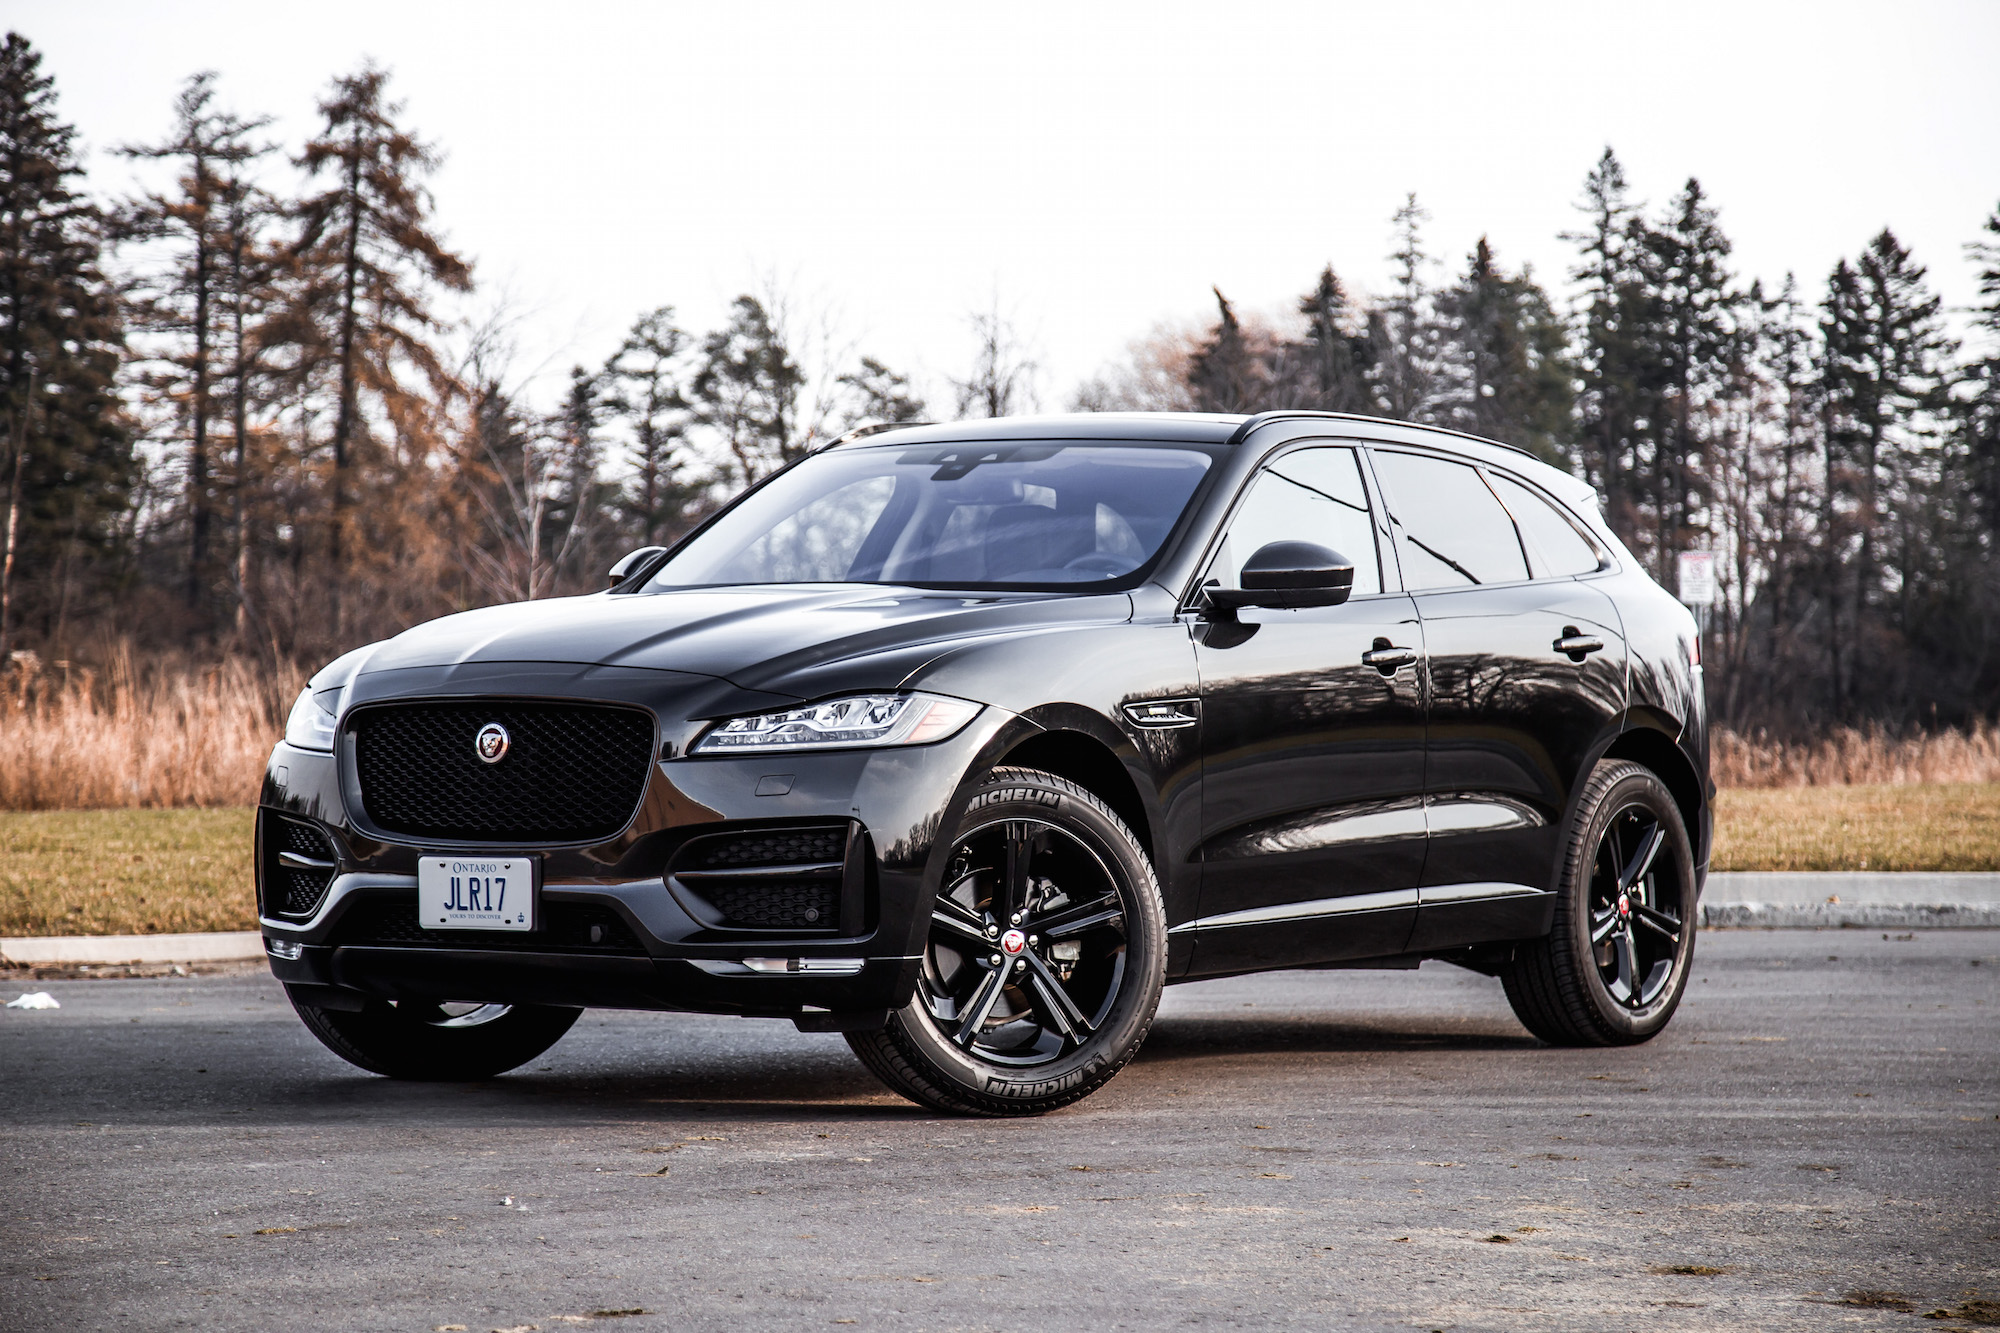 2018 jaguar f pace 20d review canadian auto review. Black Bedroom Furniture Sets. Home Design Ideas